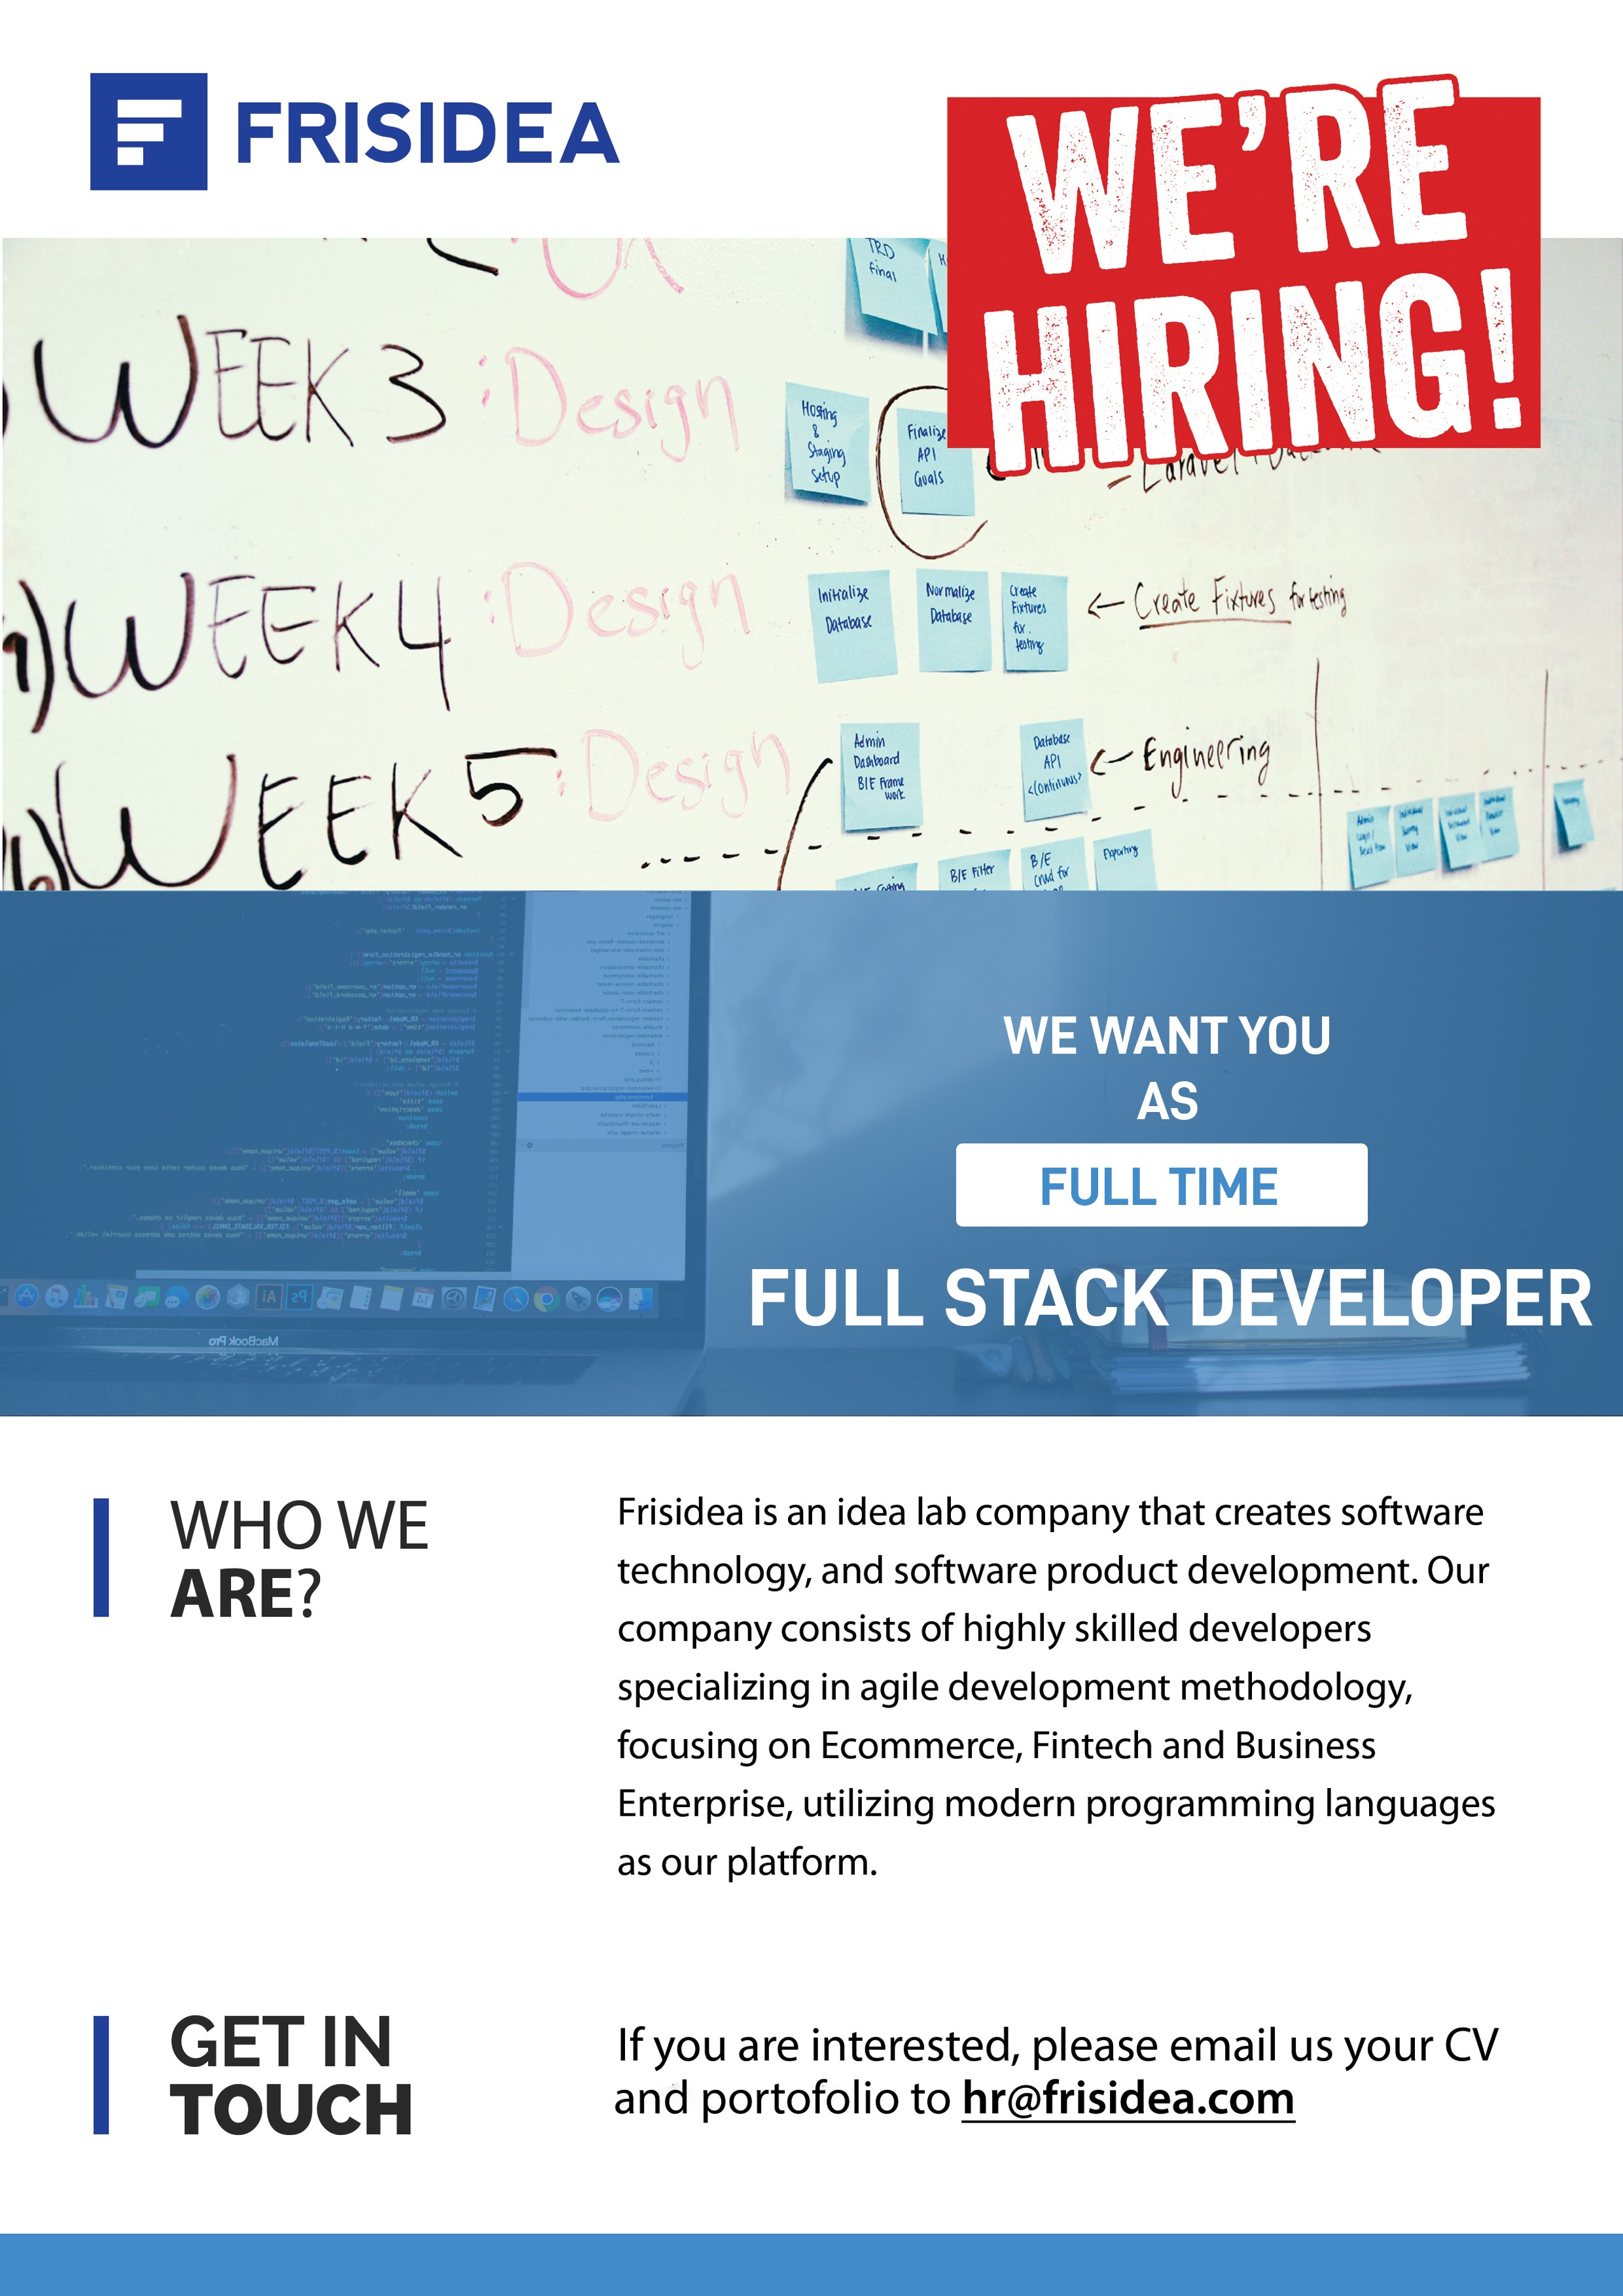 poster_fullstack_developer